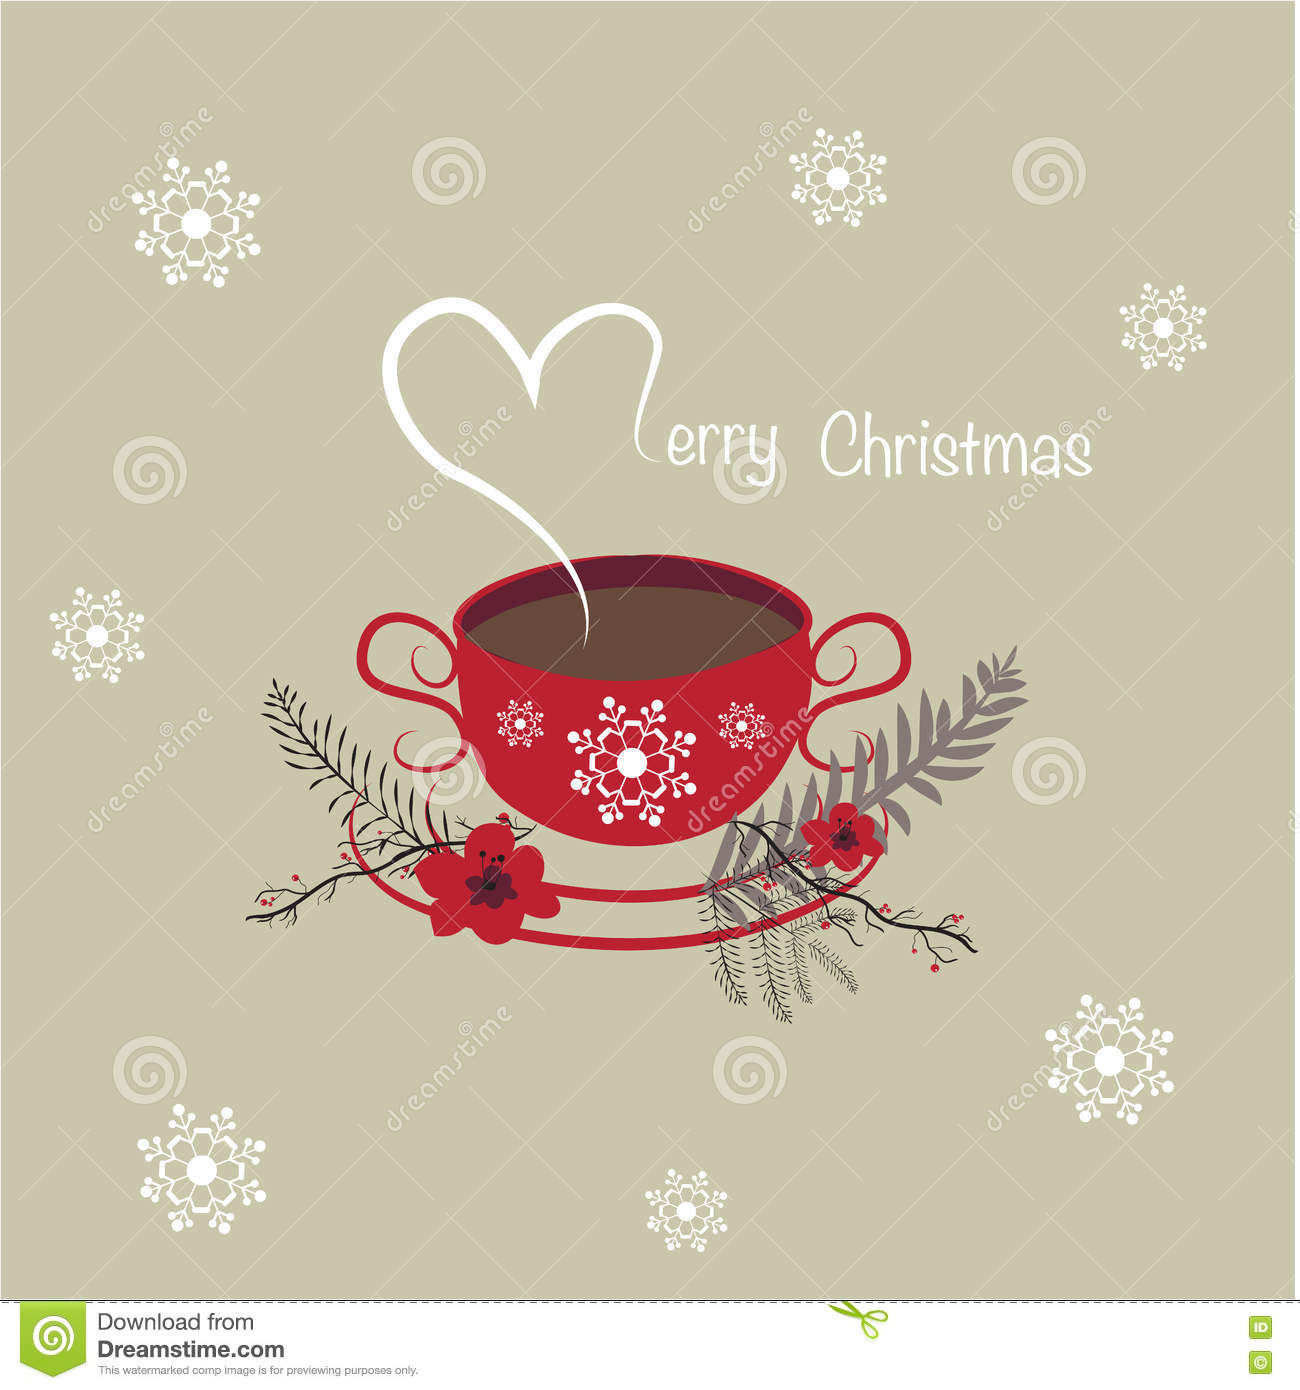 Merry Christmas Coffee Cup Background Stock Illustration ...